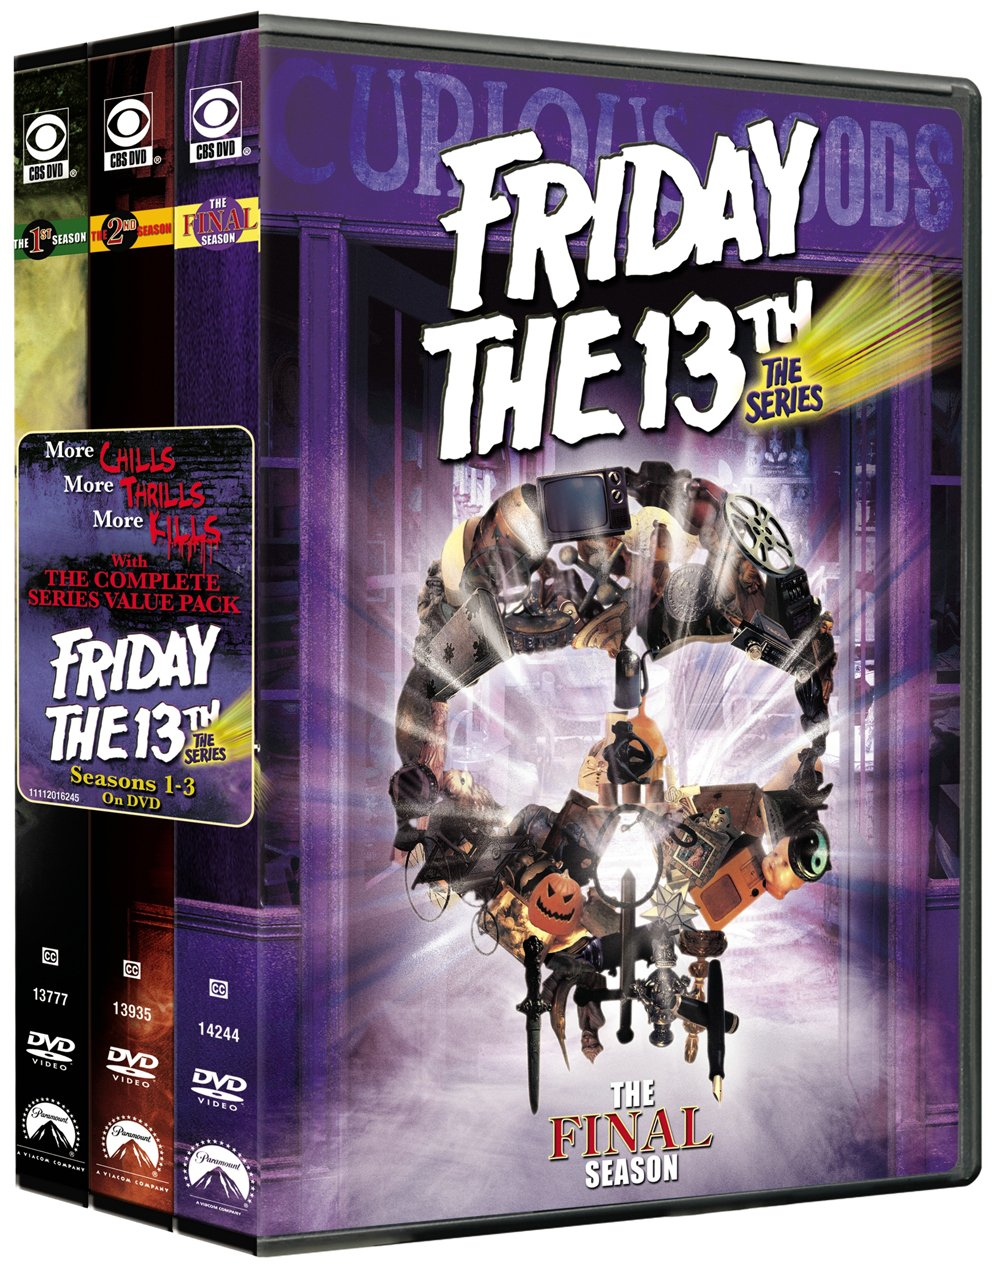 Friday the 13th the Series: Complete Series Pack DVD: Amazon.es: Cine y Series TV